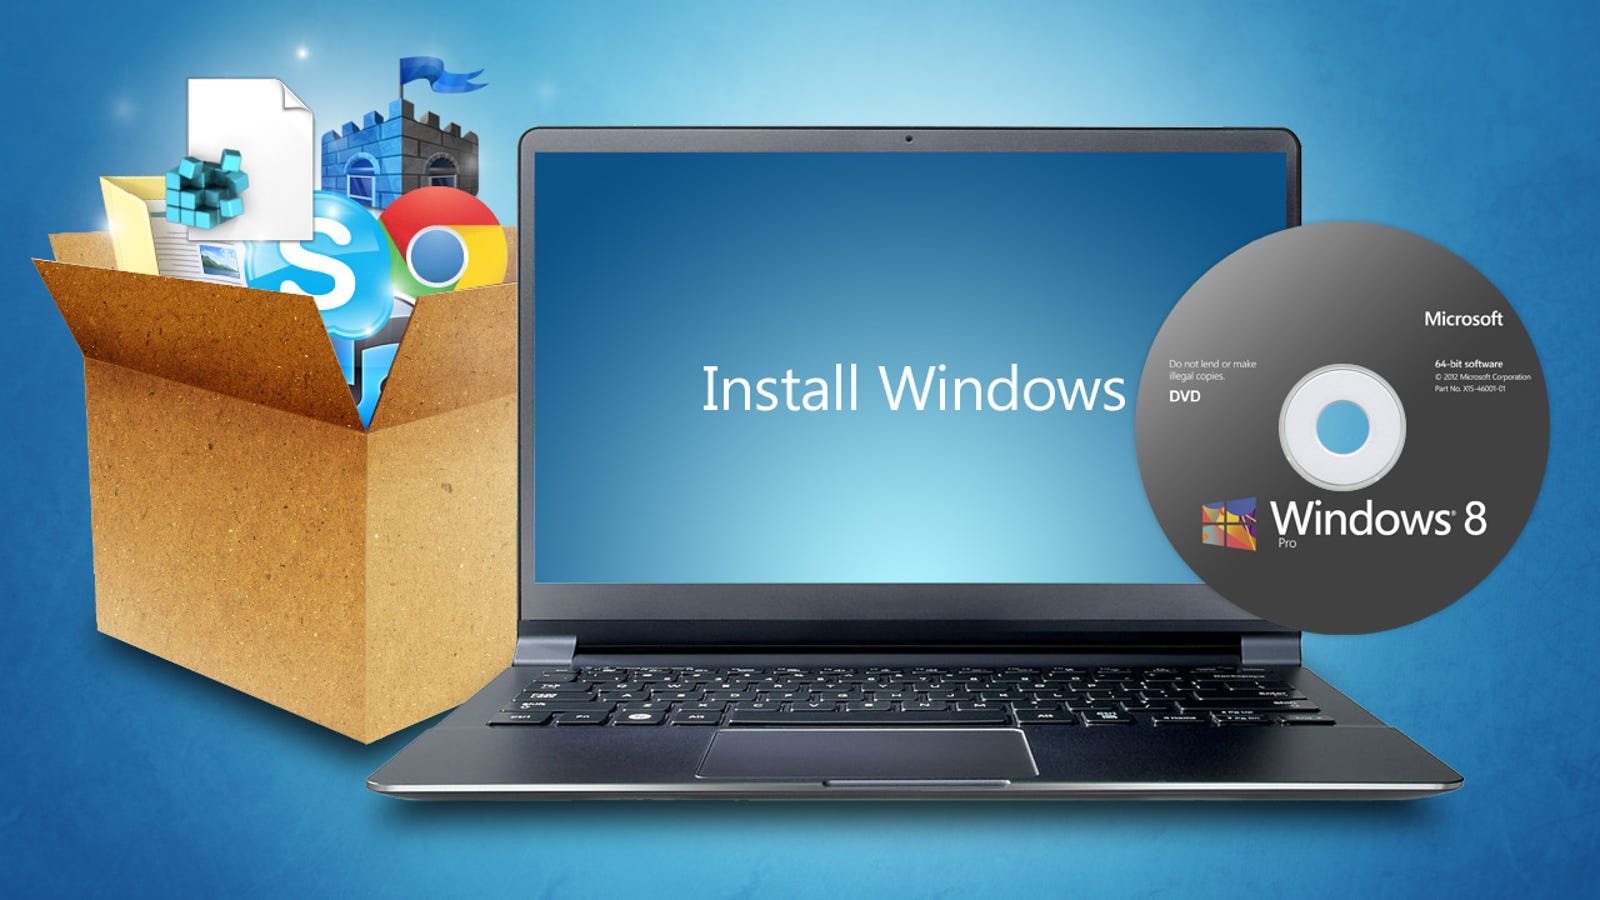 How to Do a Clean Install of Windows Without Losing Your